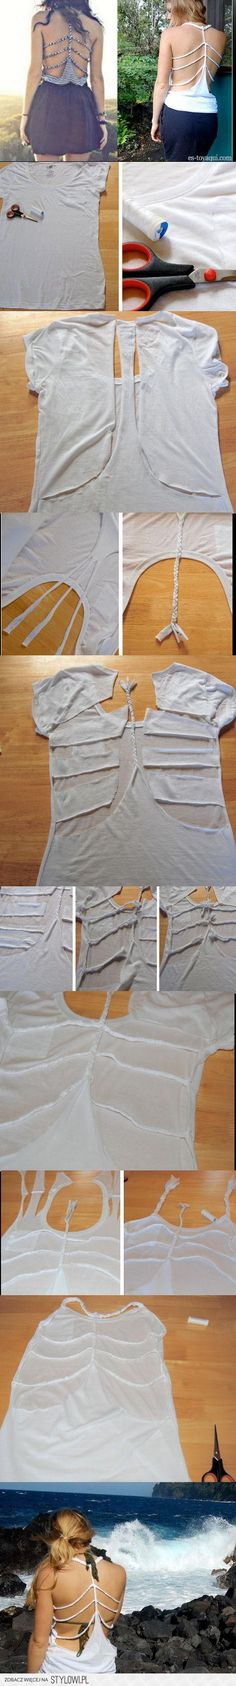 How To Turn A T-shirt Into A Top